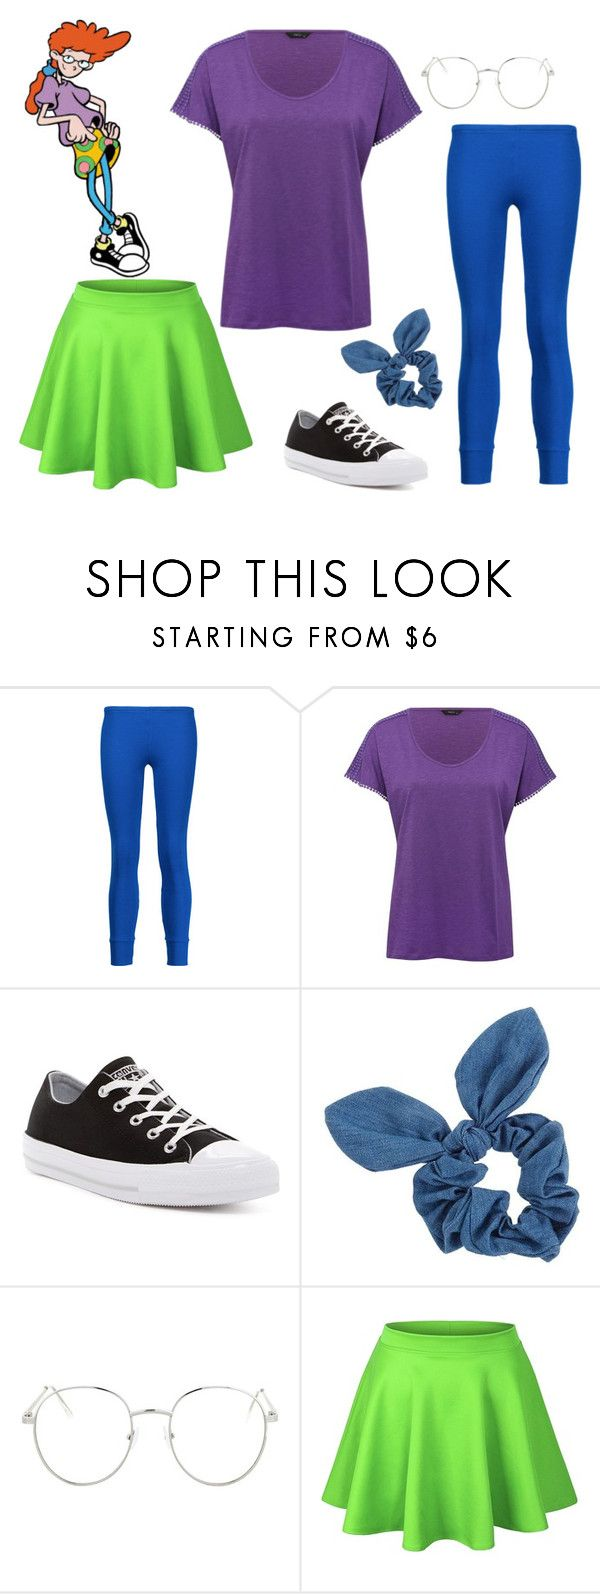 """Pepper Ann"" by sassyladies ❤ liked on Polyvore featuring Y-3, M&Co, Converse, Dorothy Perkins and Topshop"